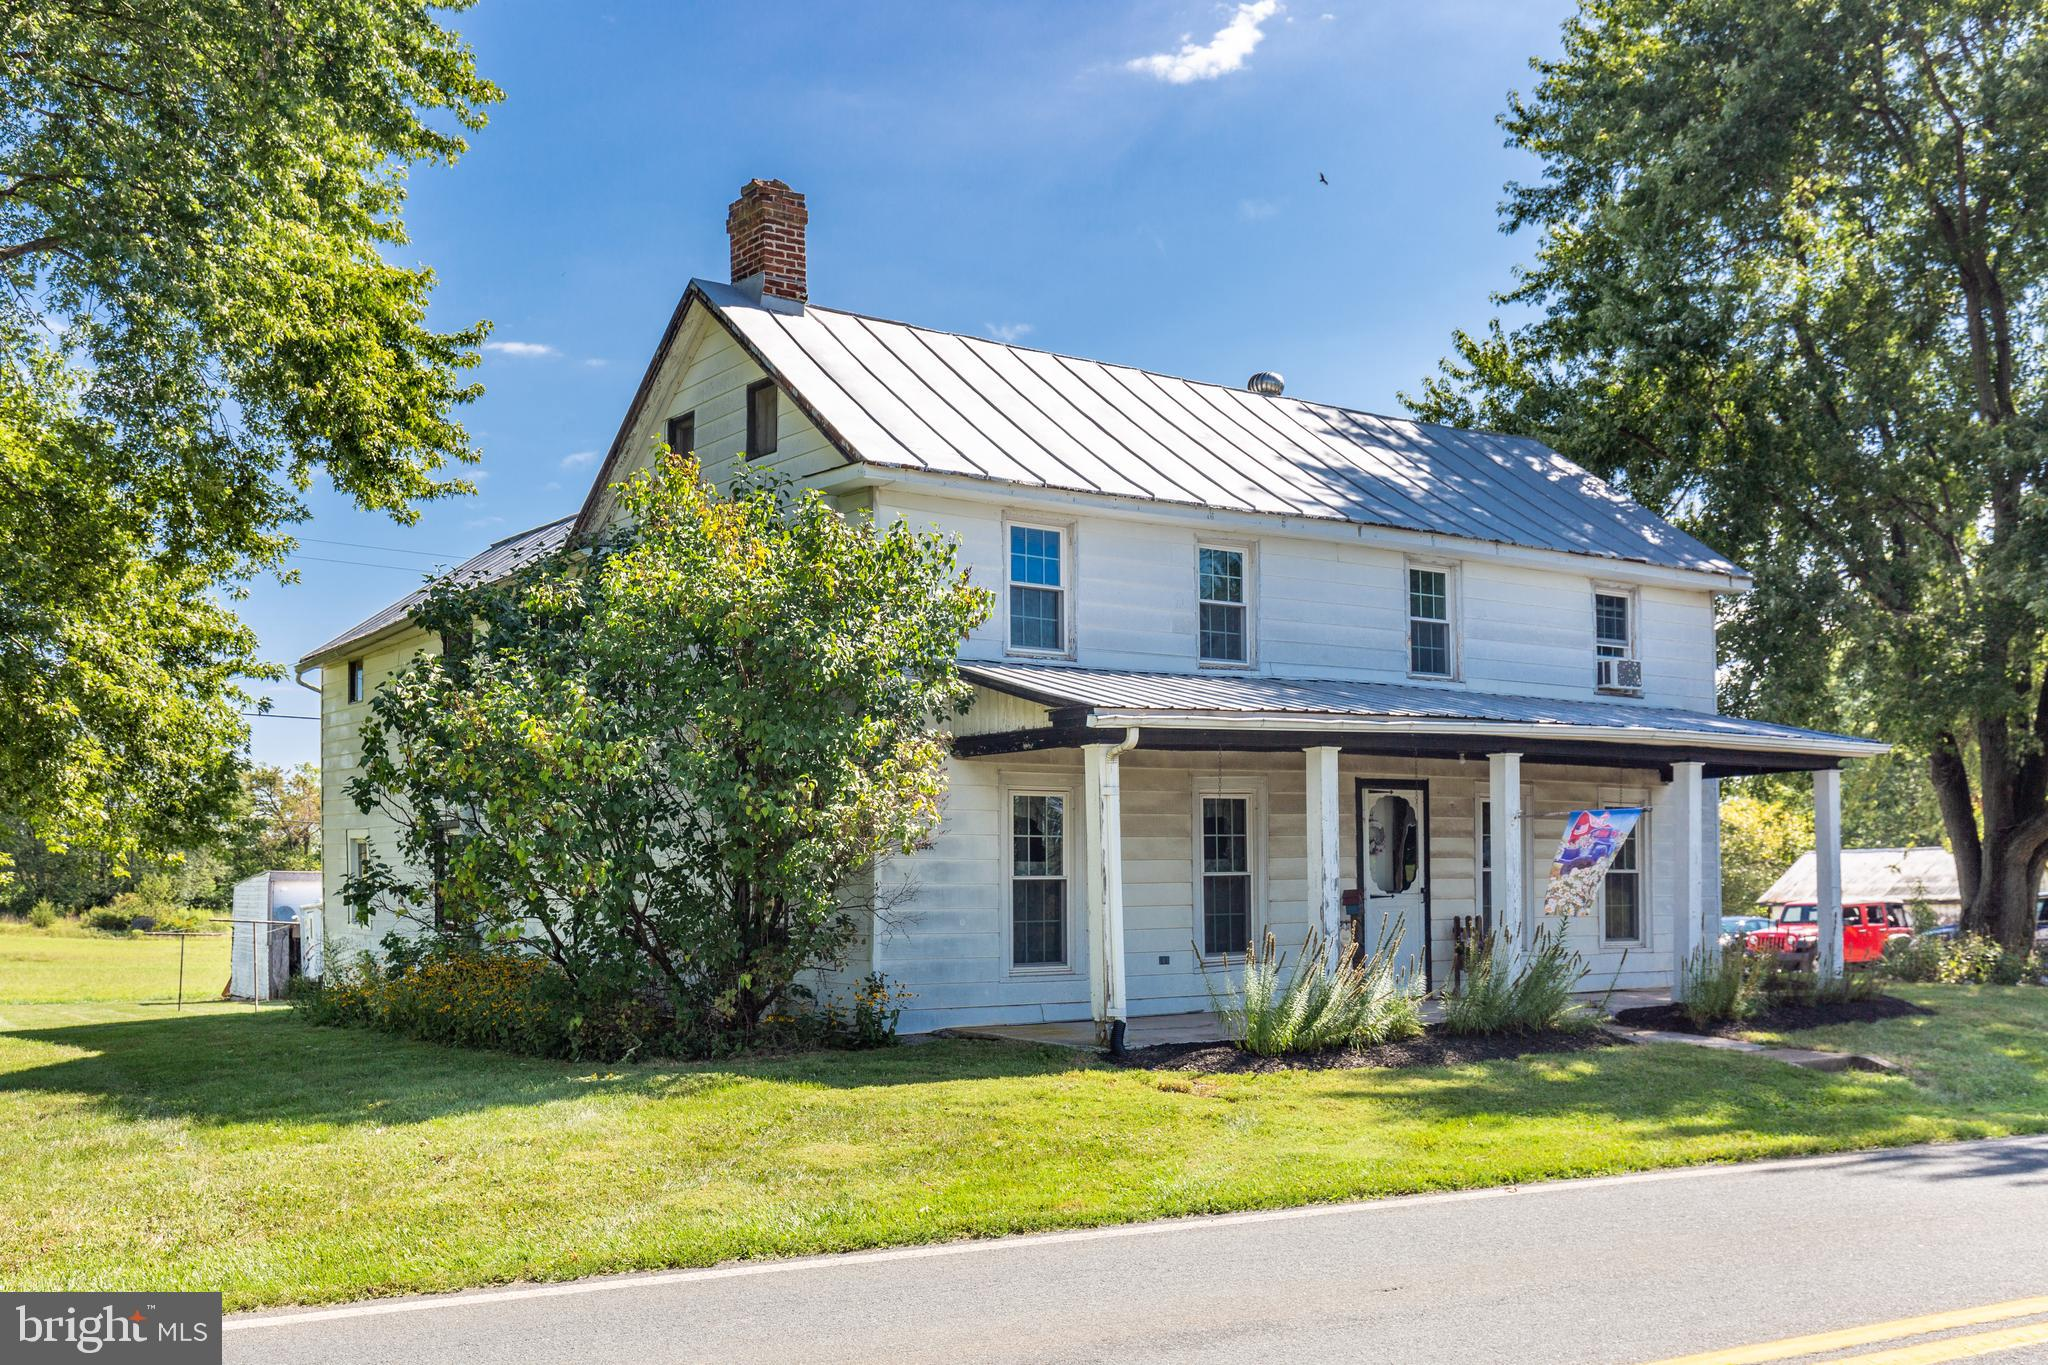 2211 Trevanion Road, Taneytown, MD 21787